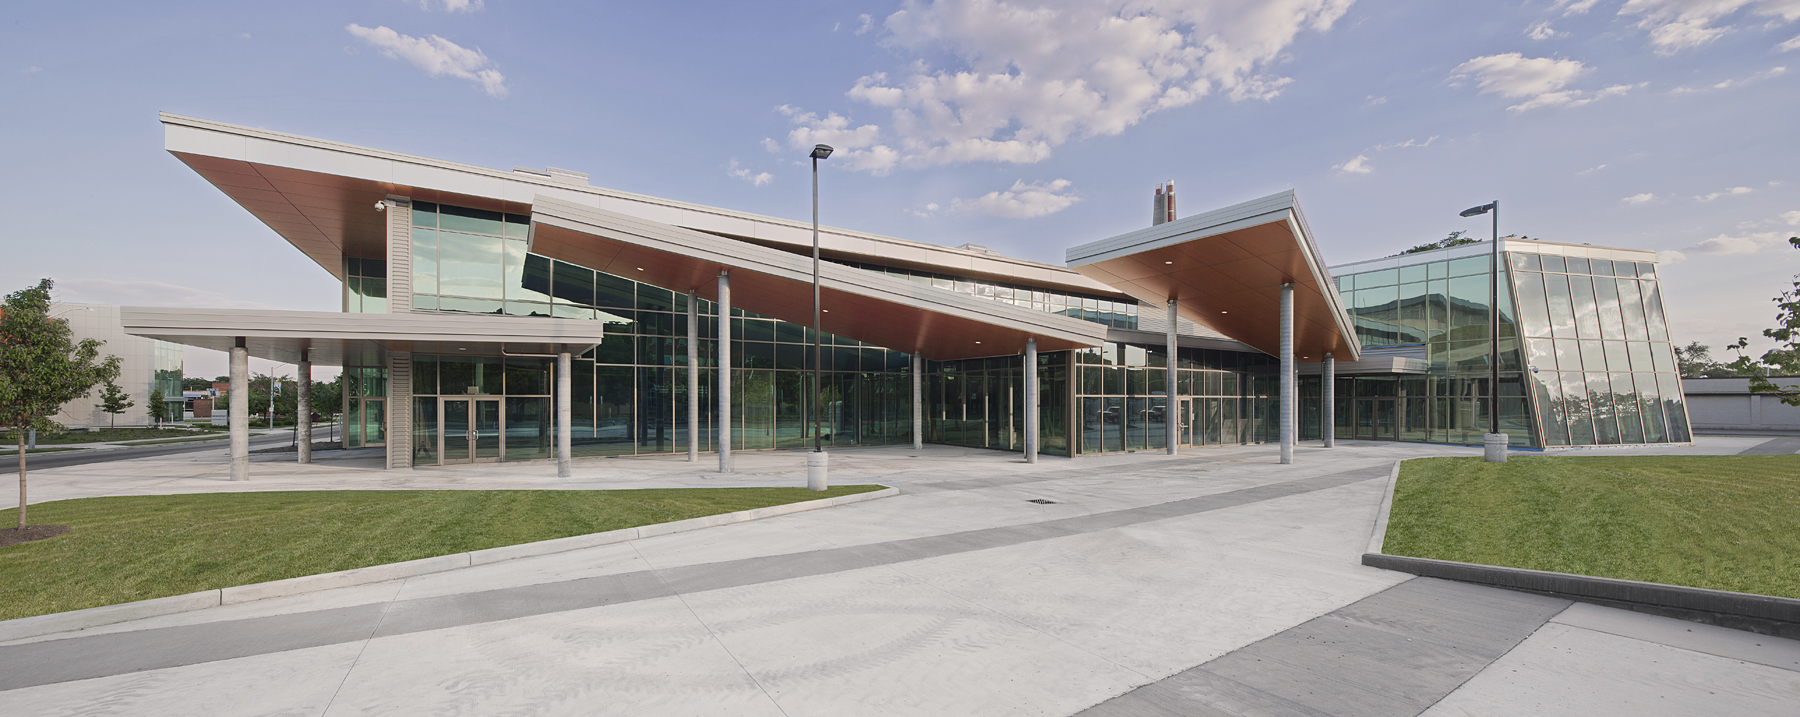 University of Windsor – Innovation Centre and Integrated Parking Structure